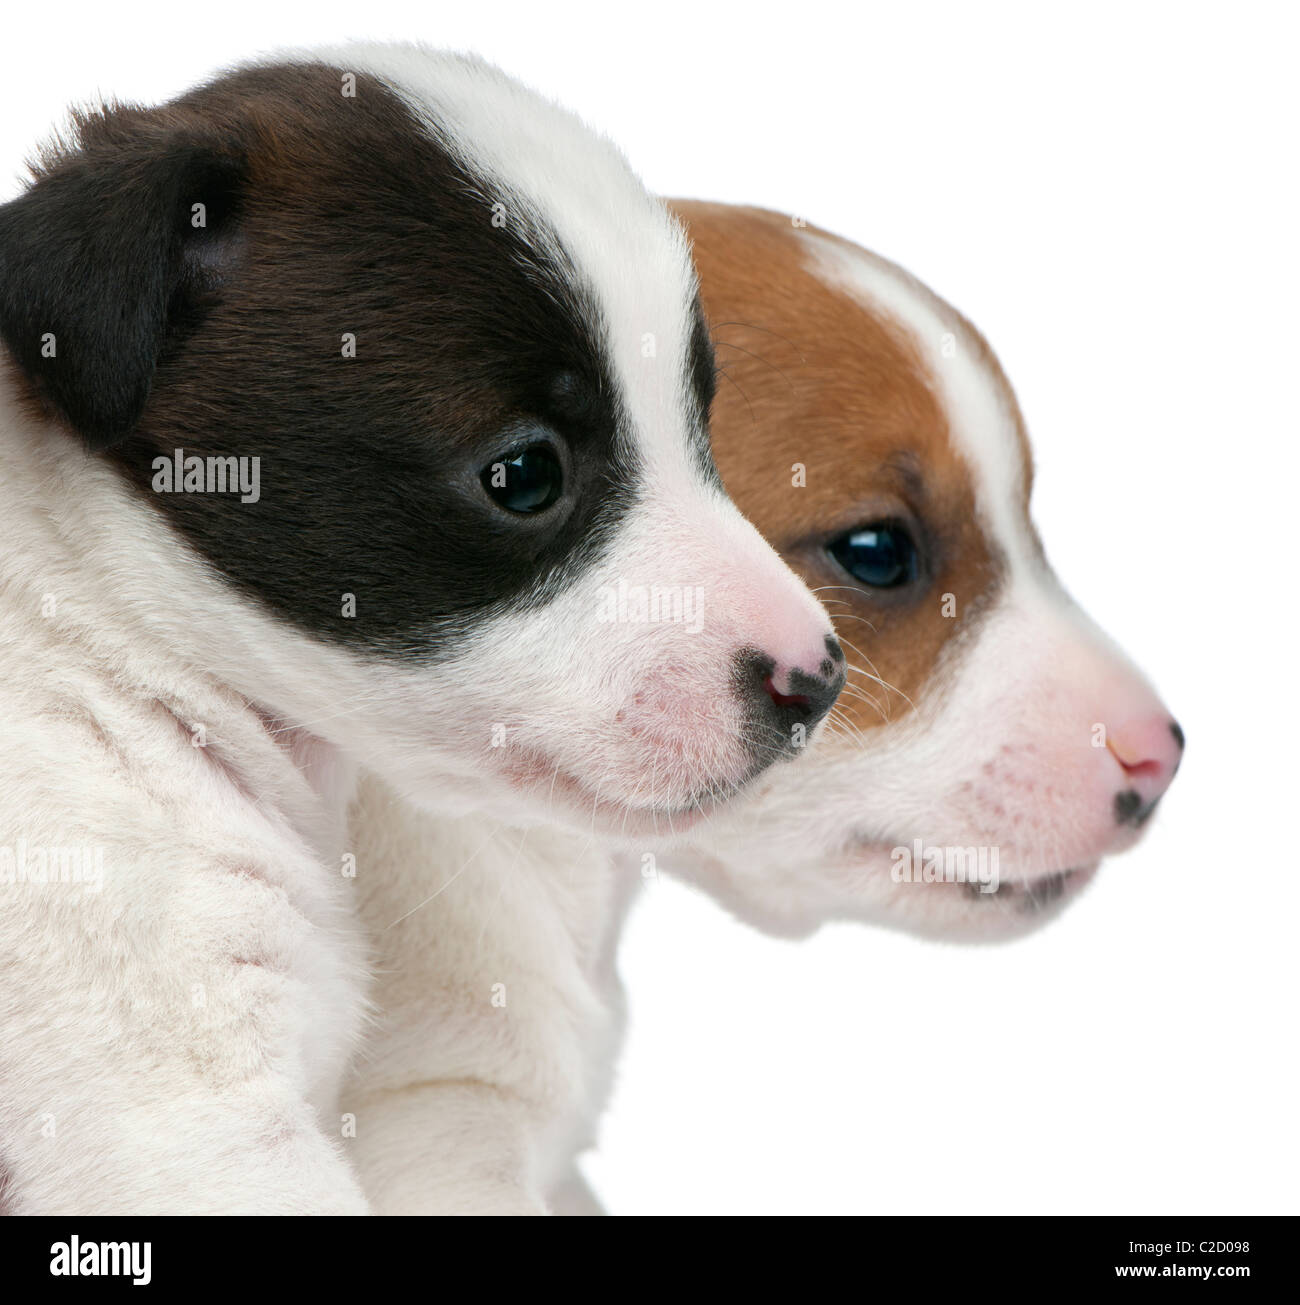 Jack Russell Terrier Puppies 5 Weeks Old Against White Background Stock Photo Alamy